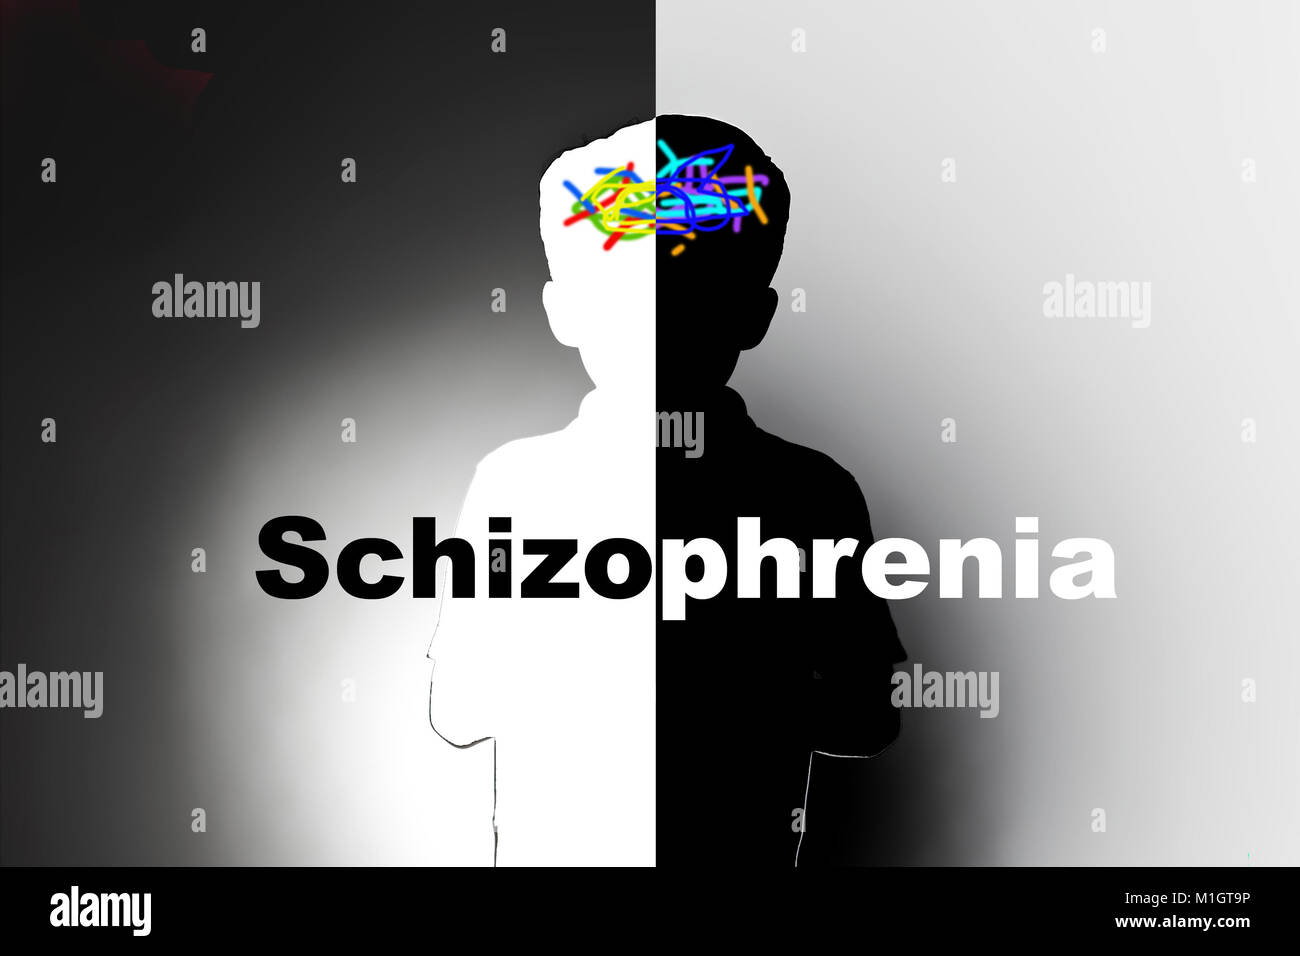 childhood schizophrenia, safeguarding children and social care,mental illness - Stock Image